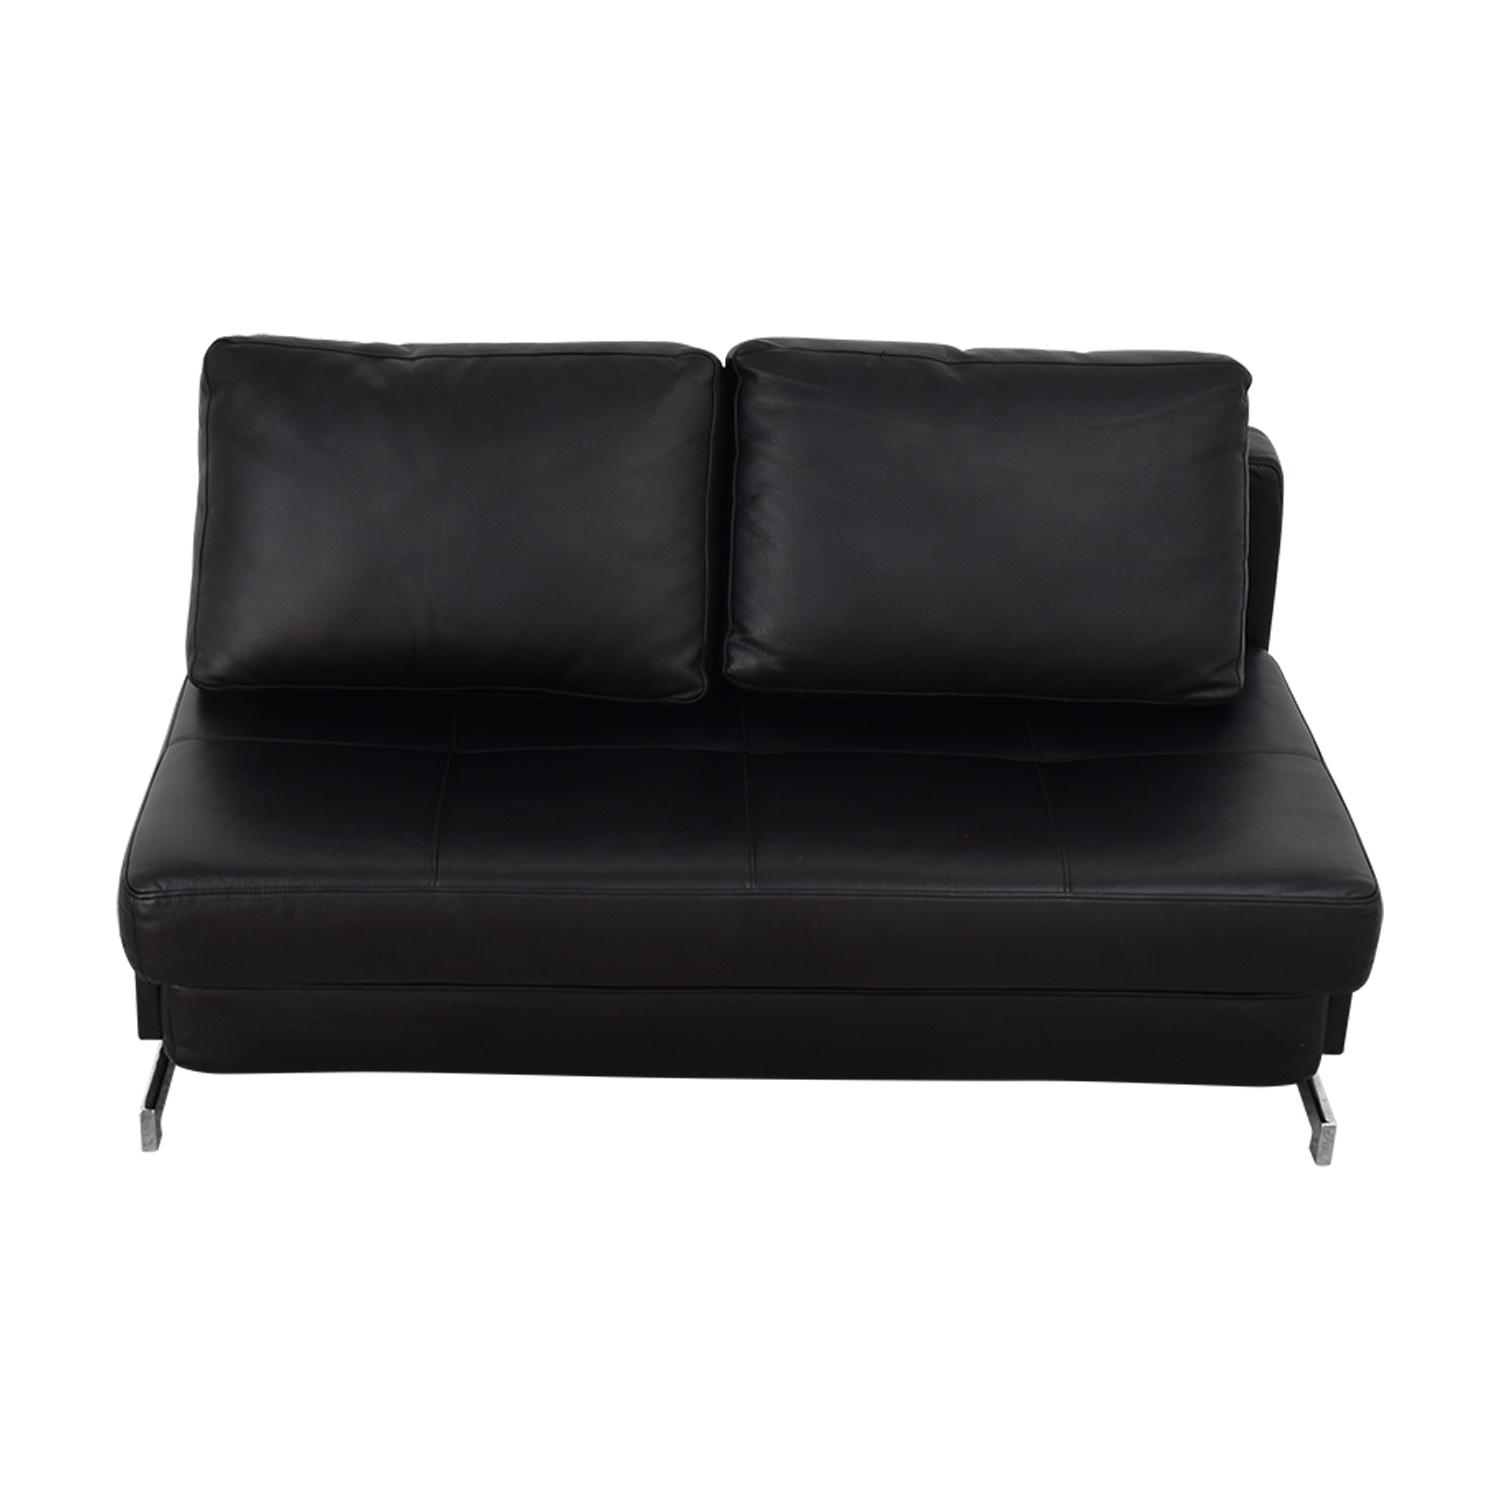 I DO Furniture I DO Furniture Black Armless Loveseat Sleeper used